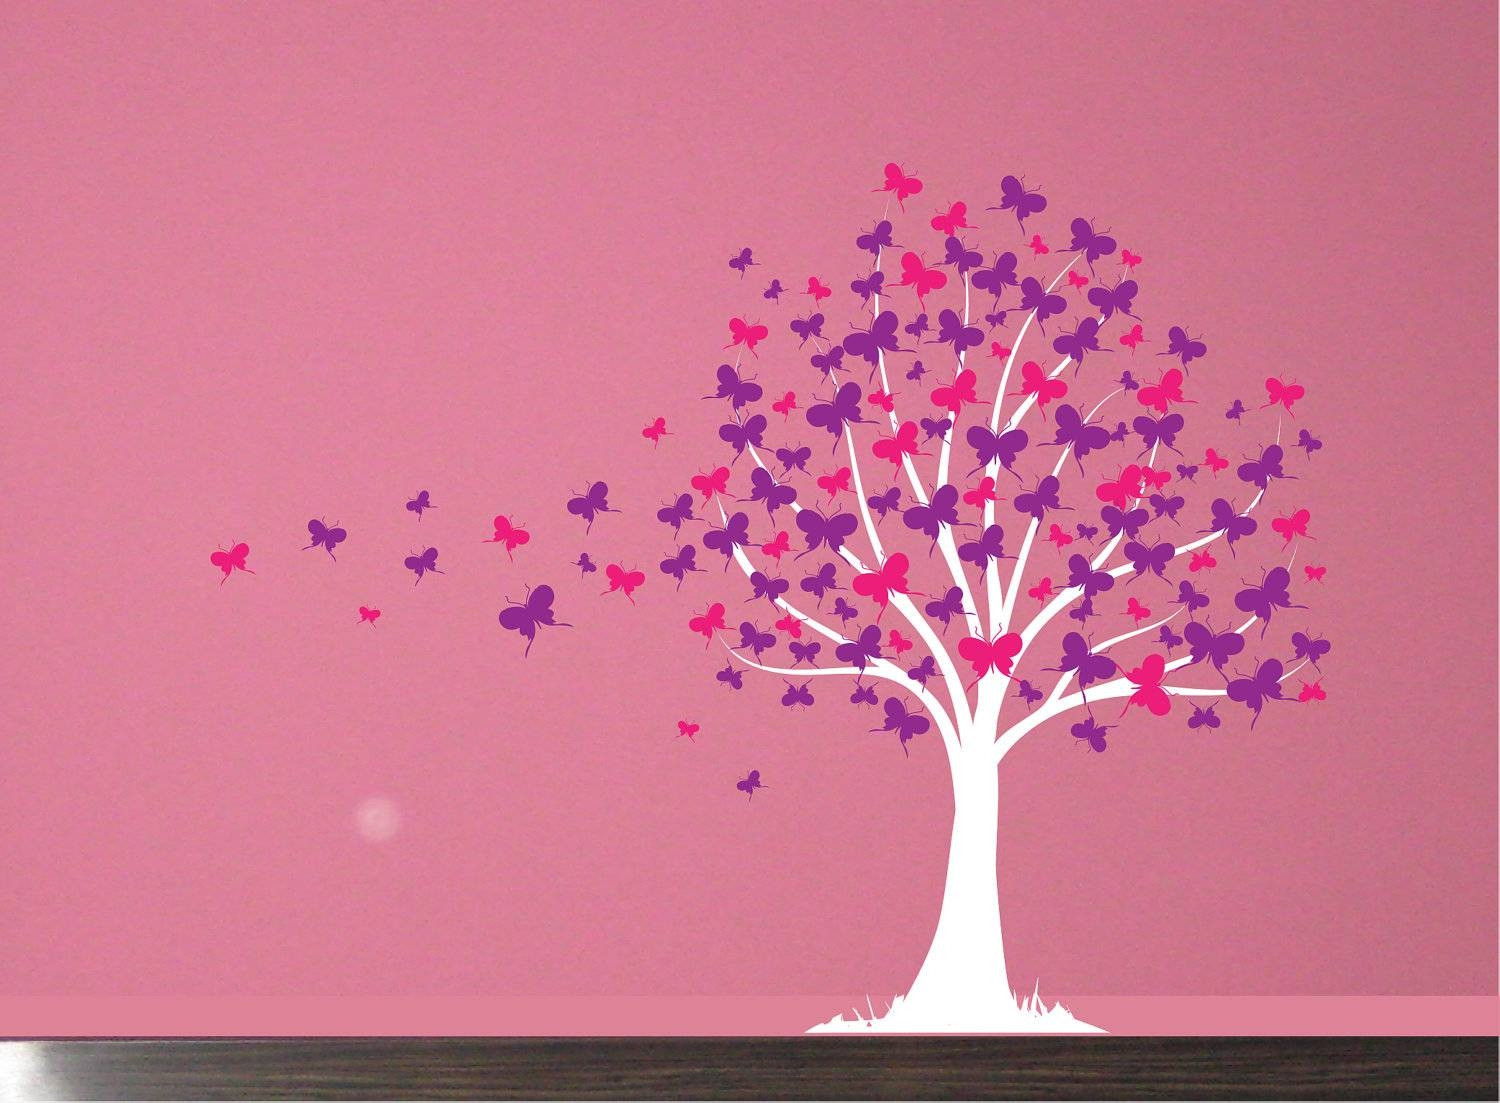 Wall Decal: Butterfly Tree Girls Vinyl Wall Art Decal Sticker Intended For Recent Butterflies Wall Art Stickers (View 11 of 20)